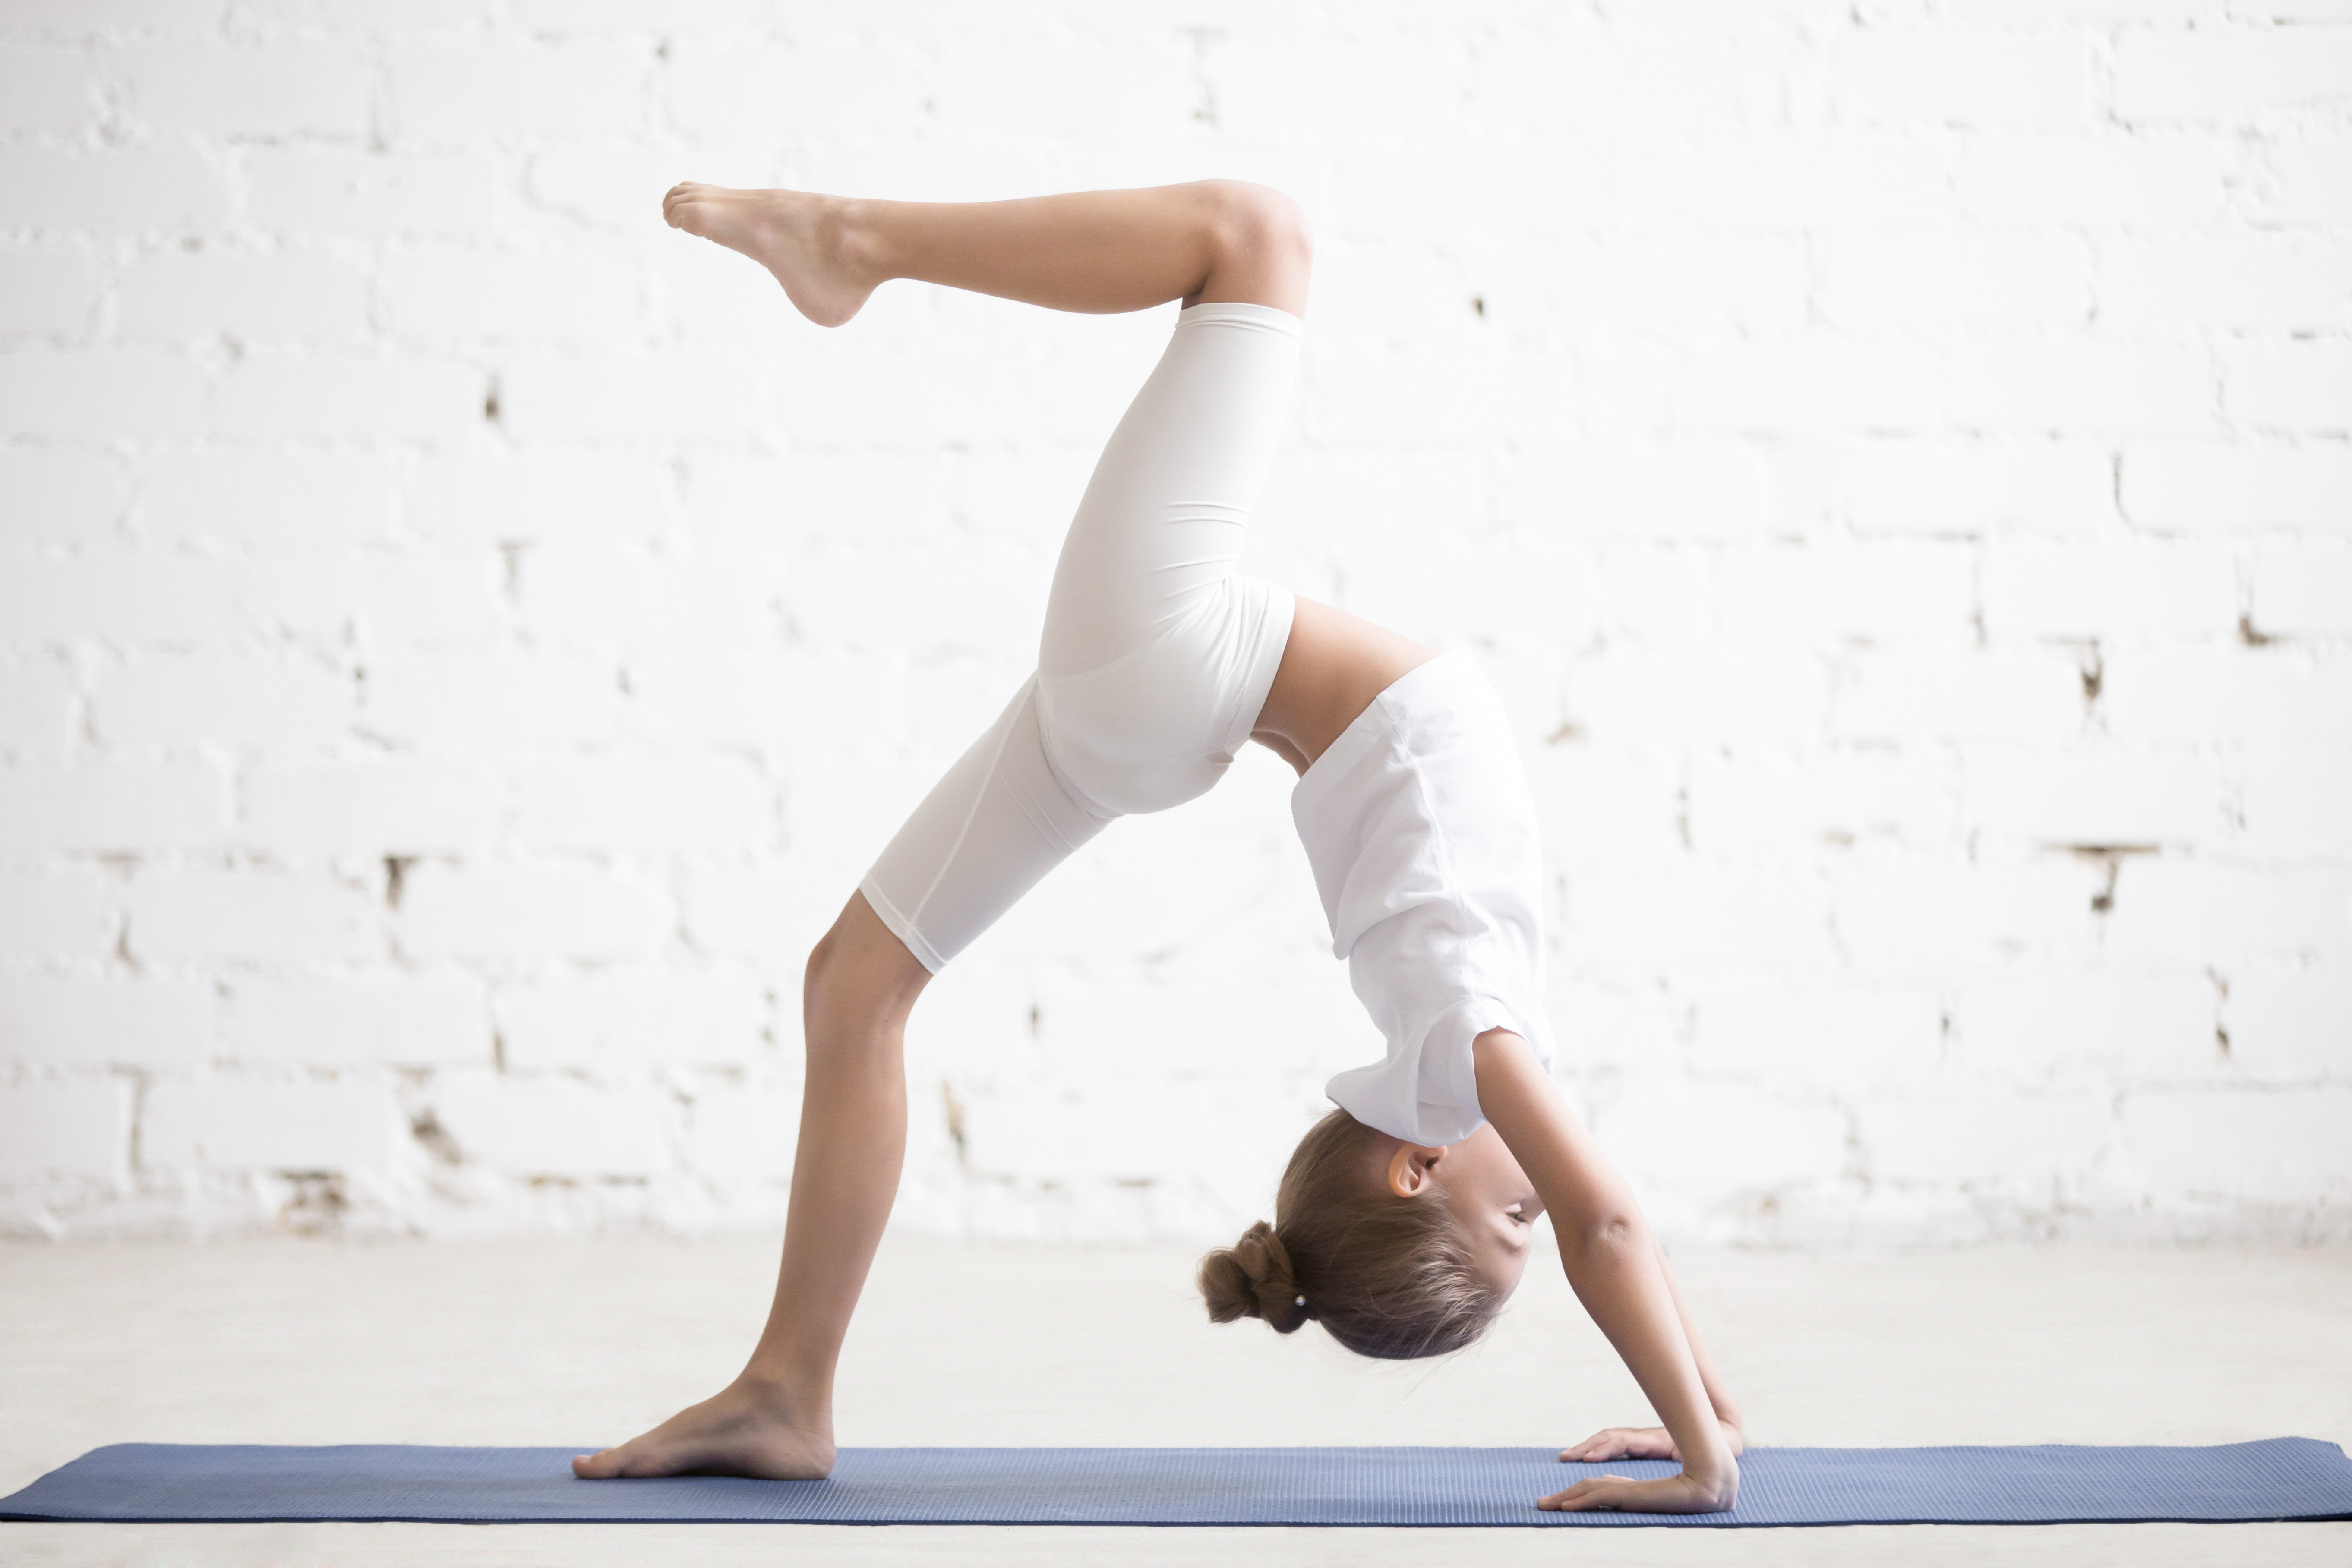 Girl child practicing yoga or fitness, standing in Bridge exercise, One legged Wheel pose, working out wearing sportswear, t-shirt, pants, indoor full length, white loft studio background